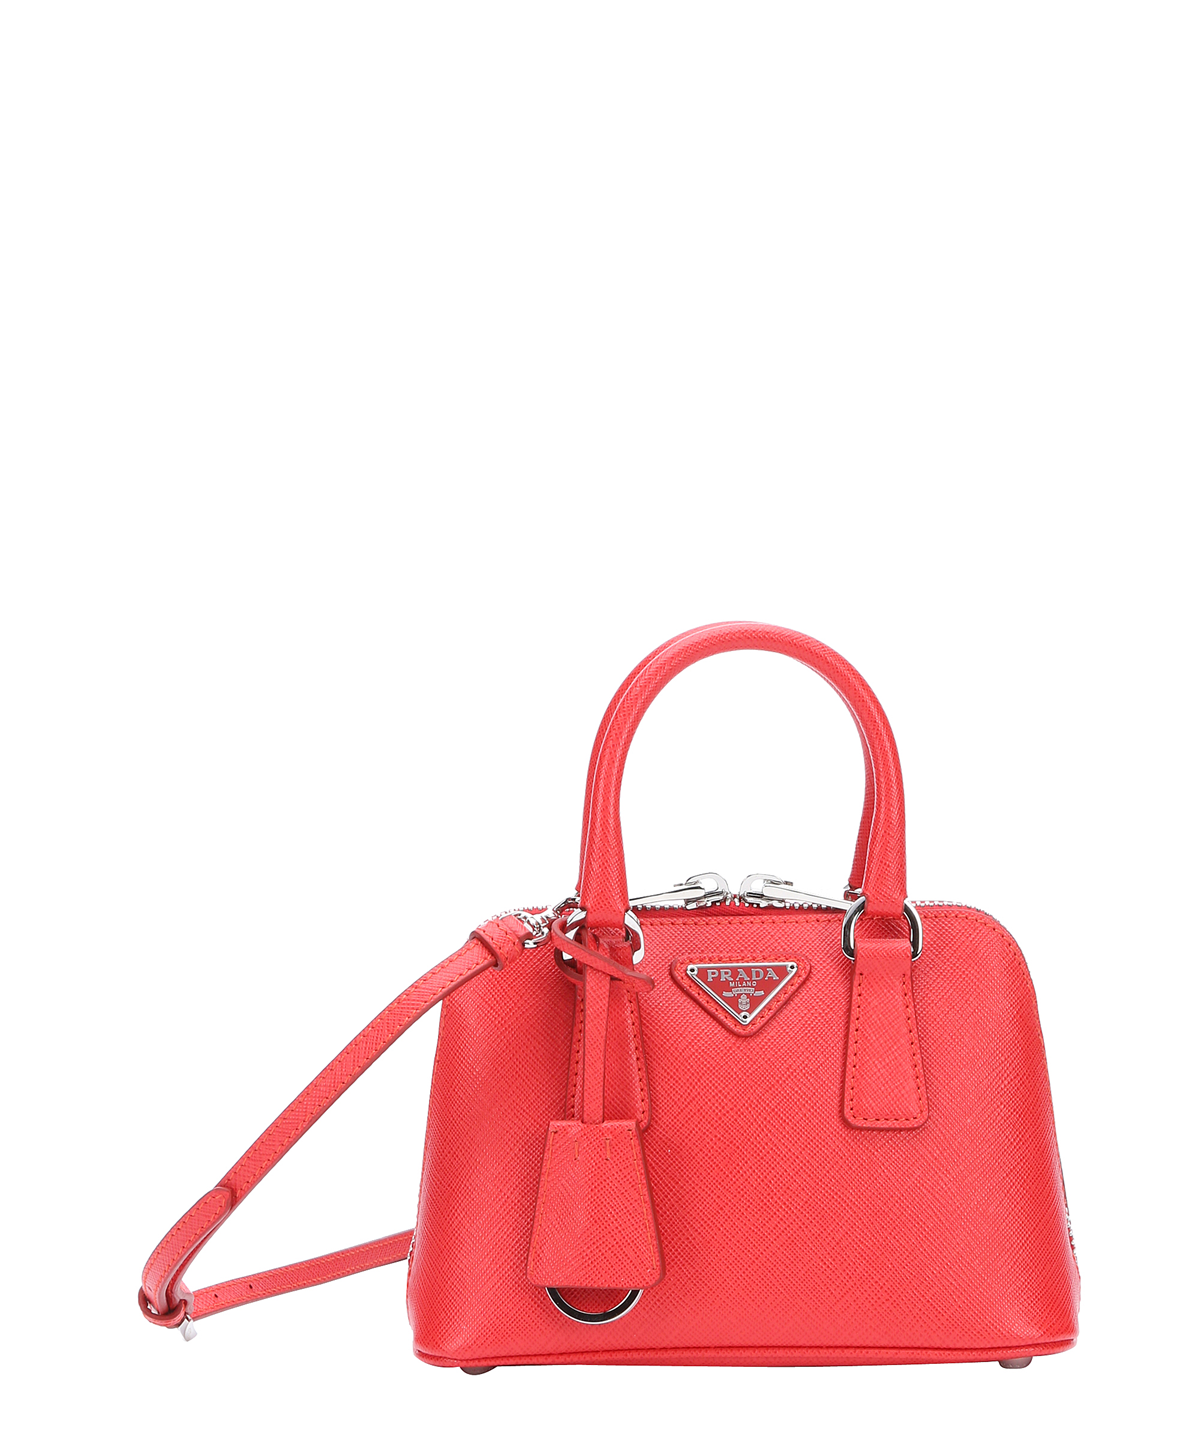 PRADA Red Saffiano Leather Mini Convertible Dome Satchel .  prada  bags   shoulder bags  hand bags  leather  satchel  lining   46ffbbb1ffbb9